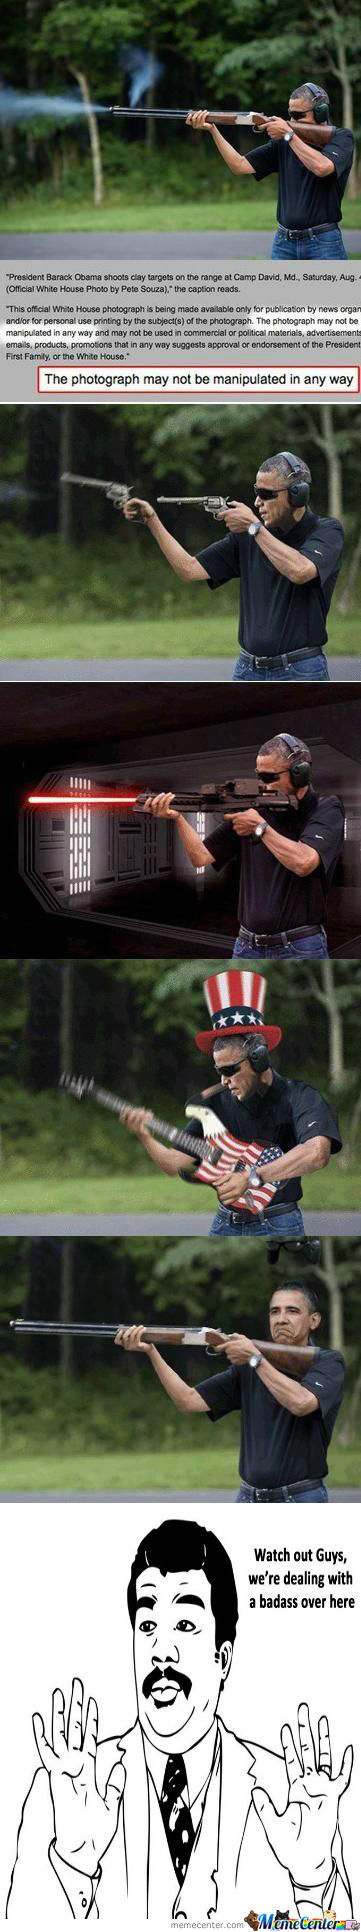 [RMX] Obama Has Big Guns